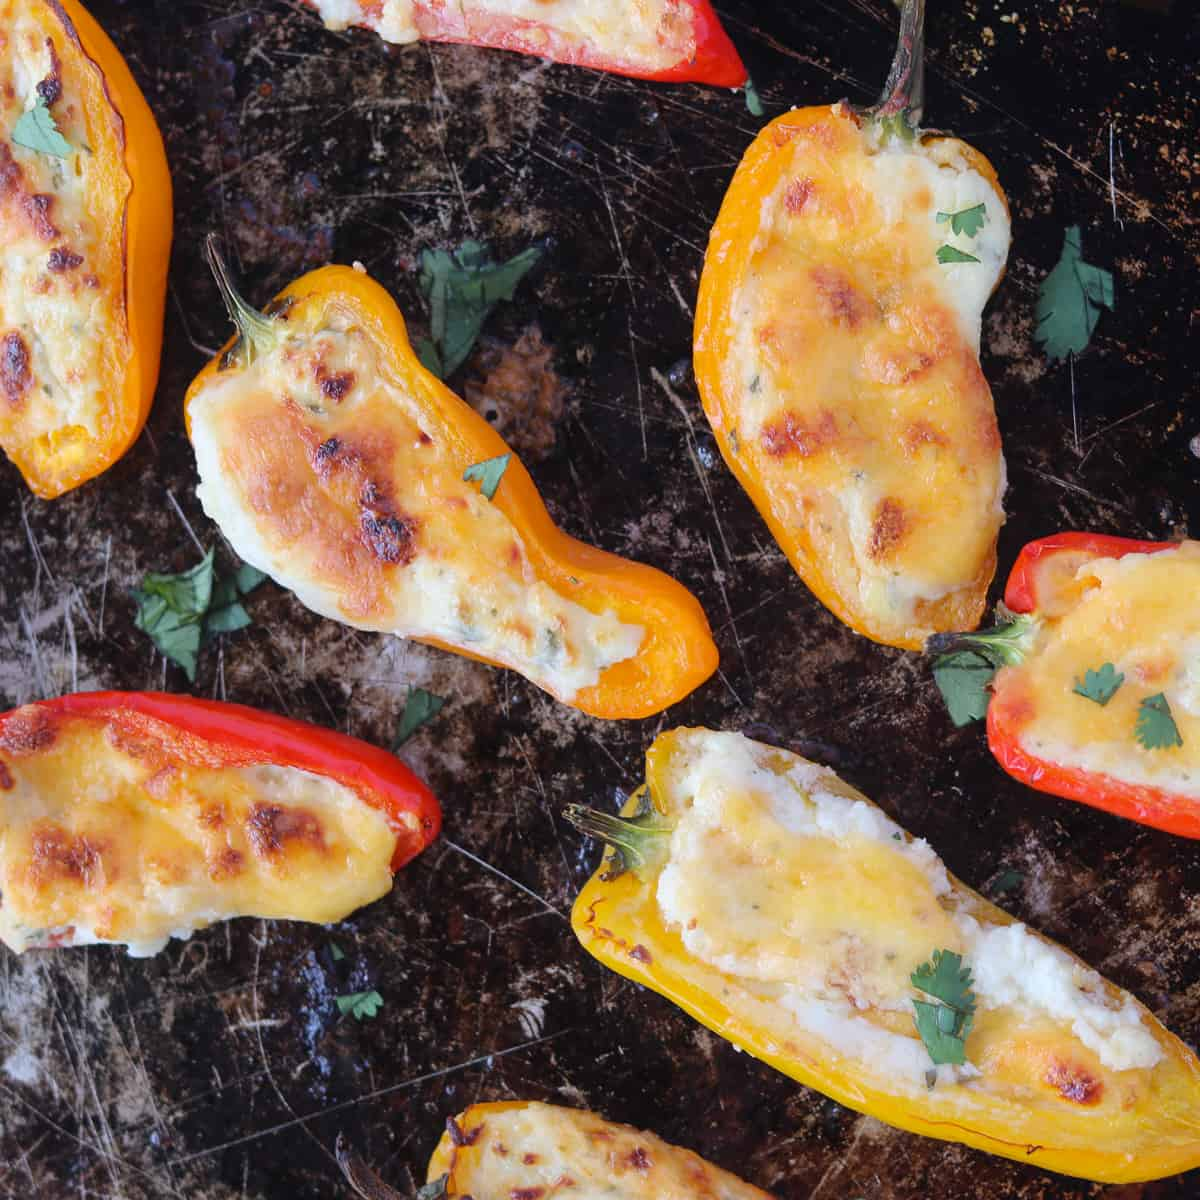 stuffed mini sweet peppers on a baking sheet after cooking with melted cheese